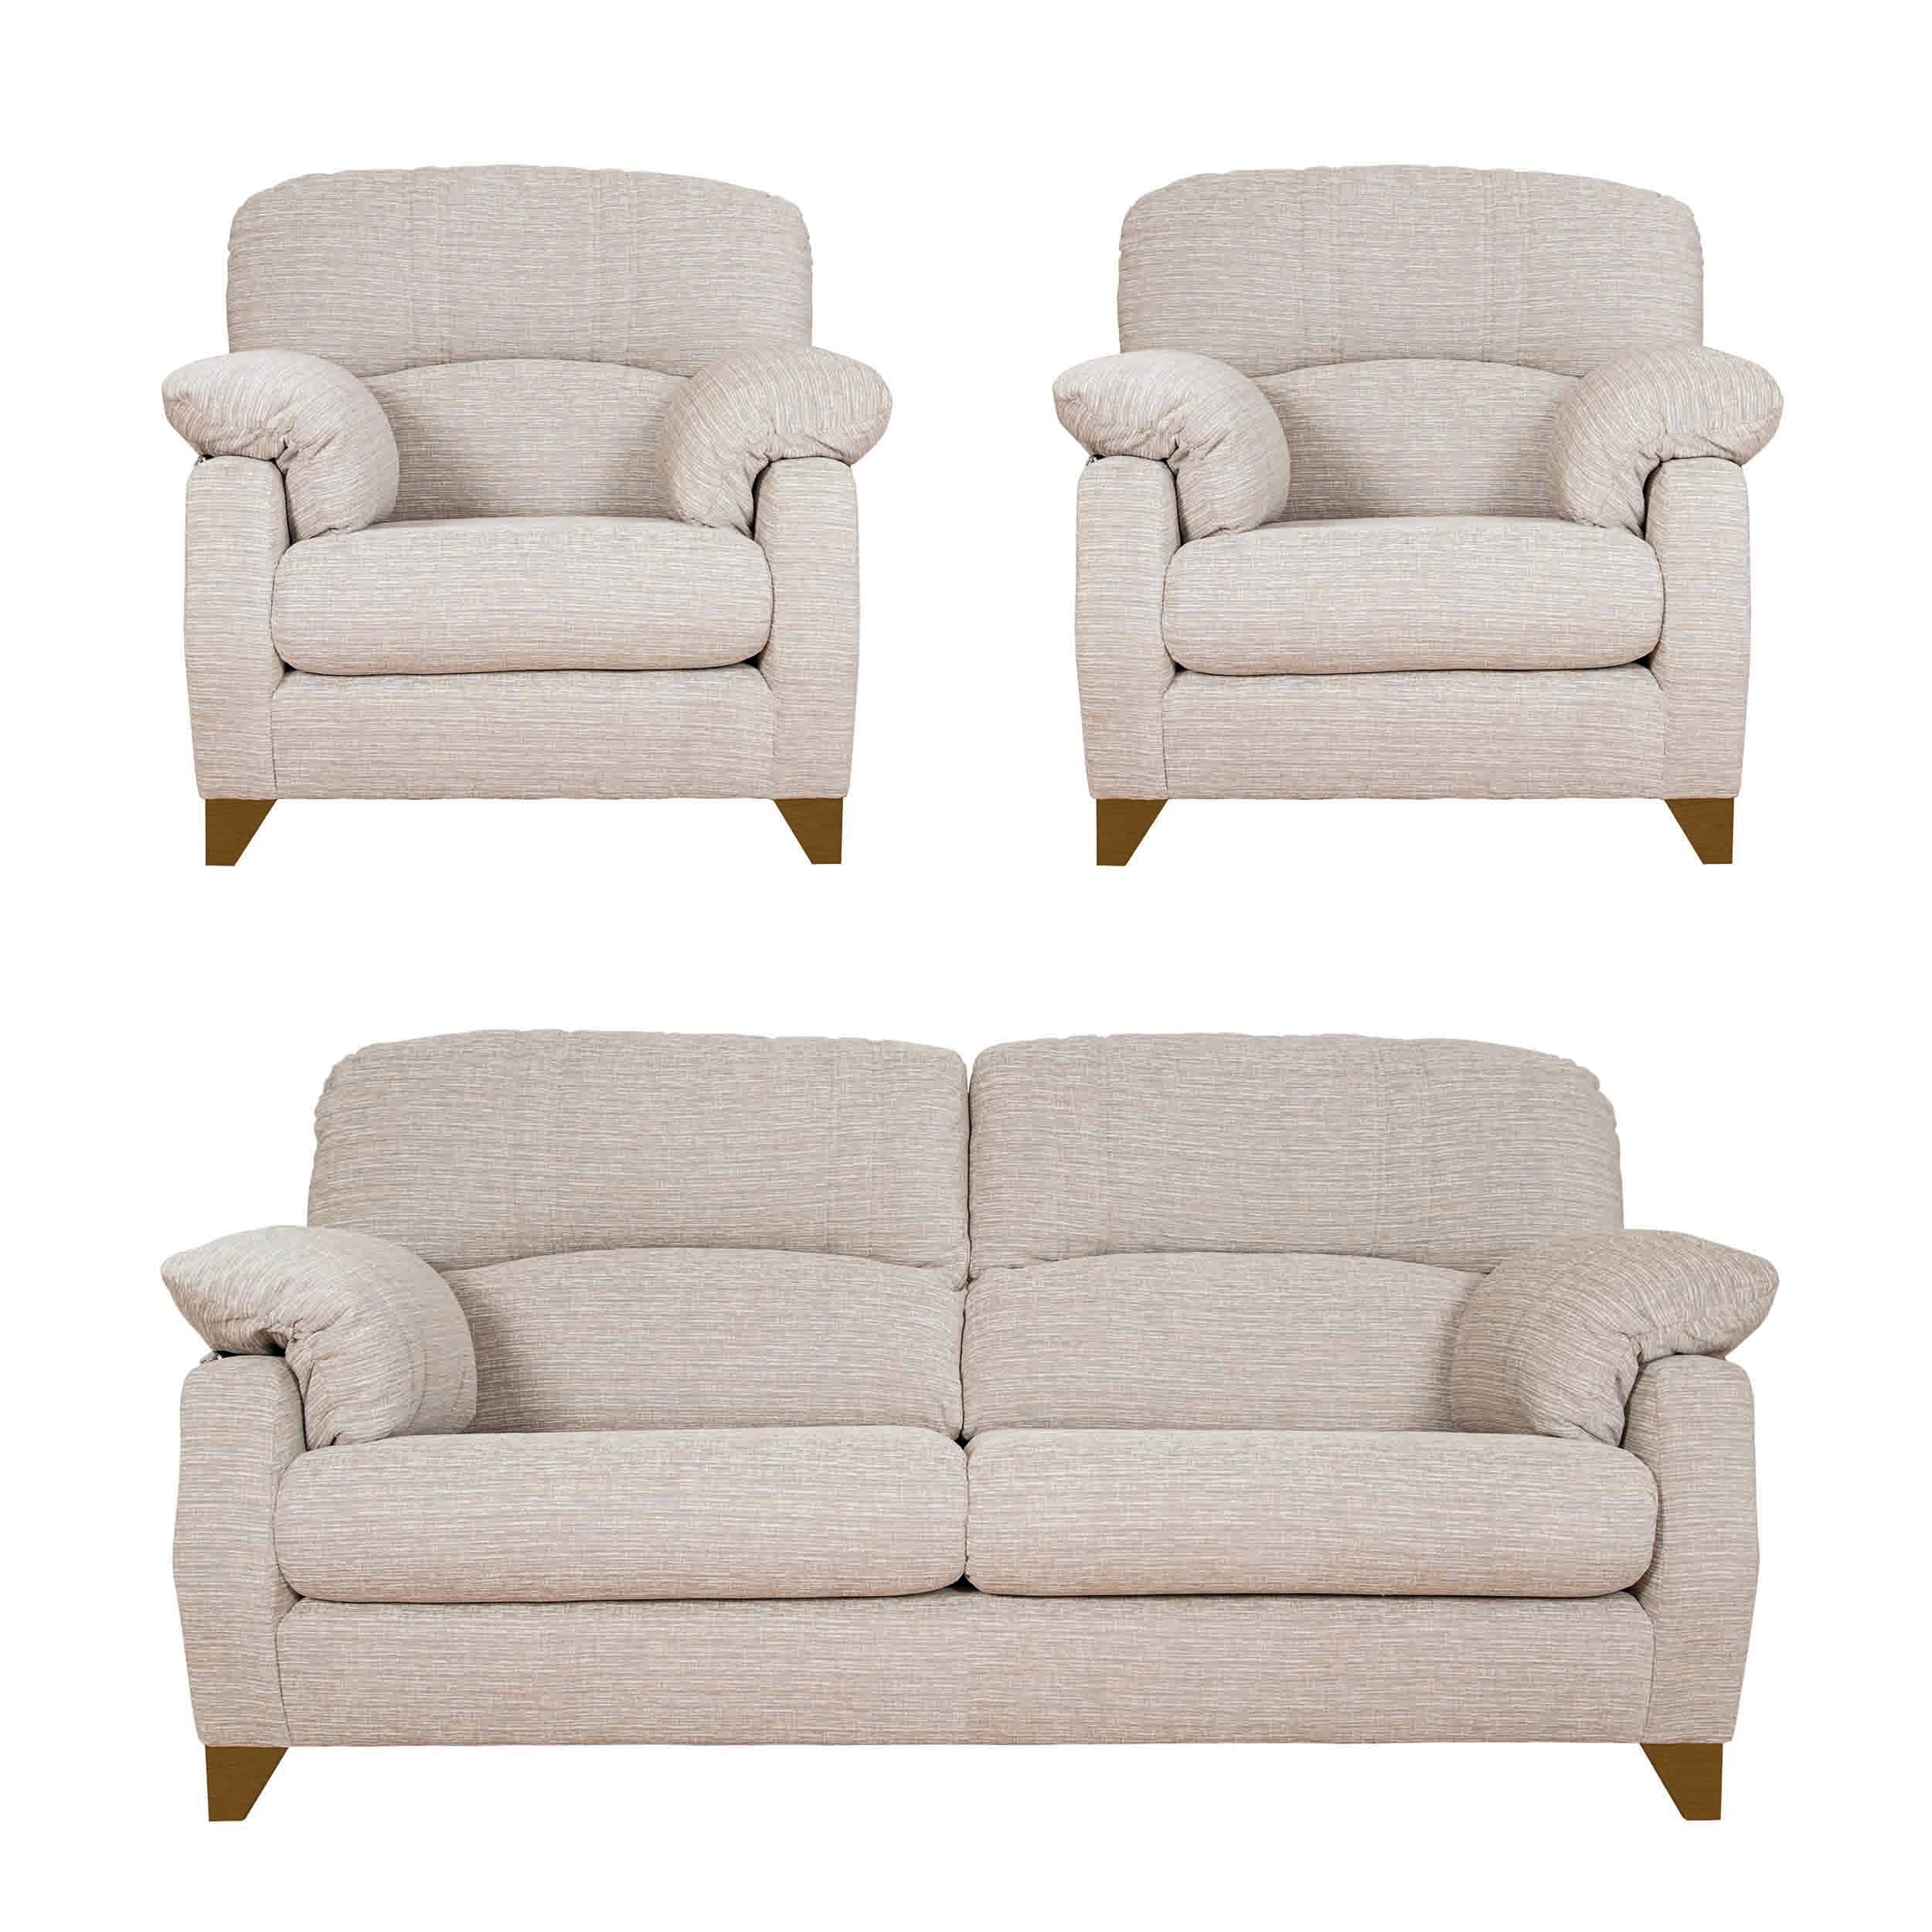 Brayden Studio Elzy 3 Piece Sofa Set